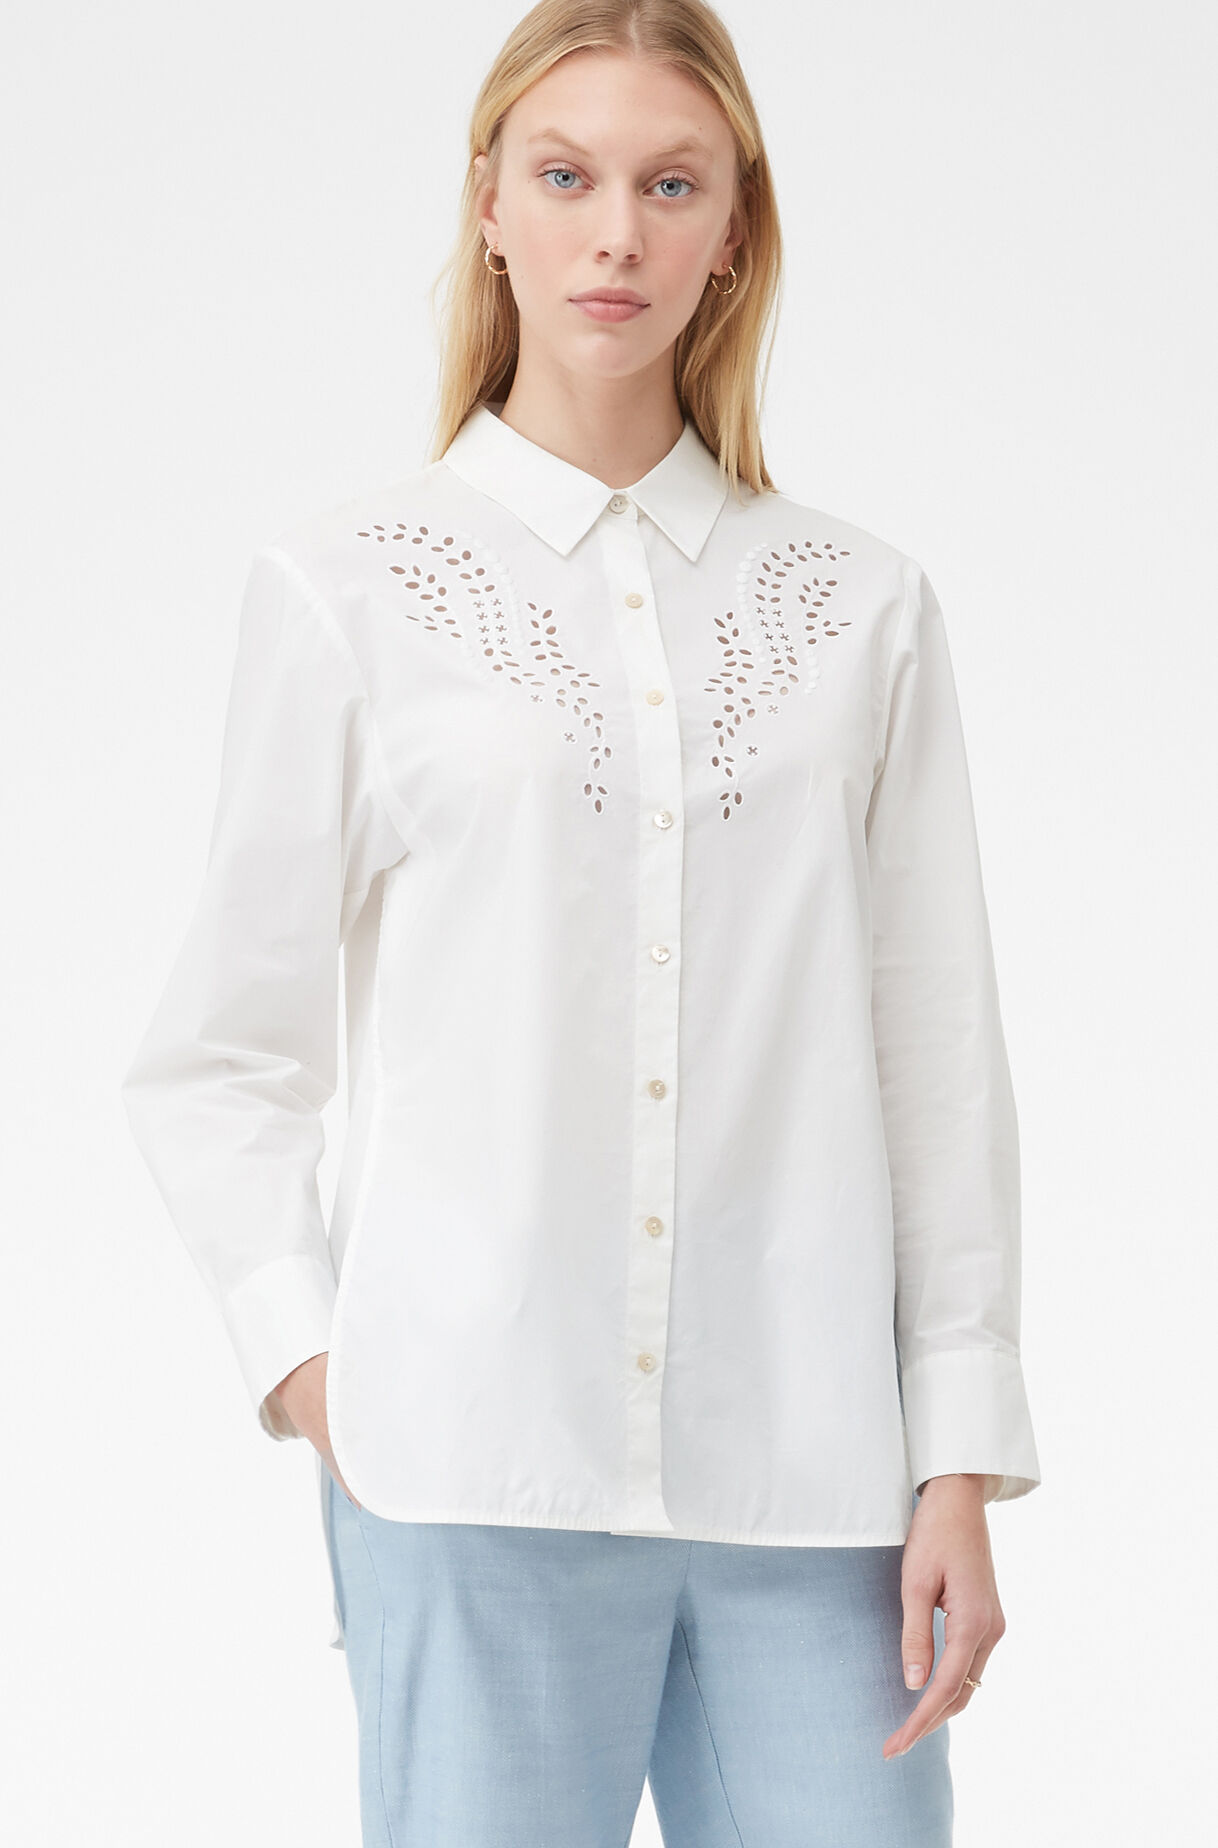 Tailored Embroidered Poplin Top, , large